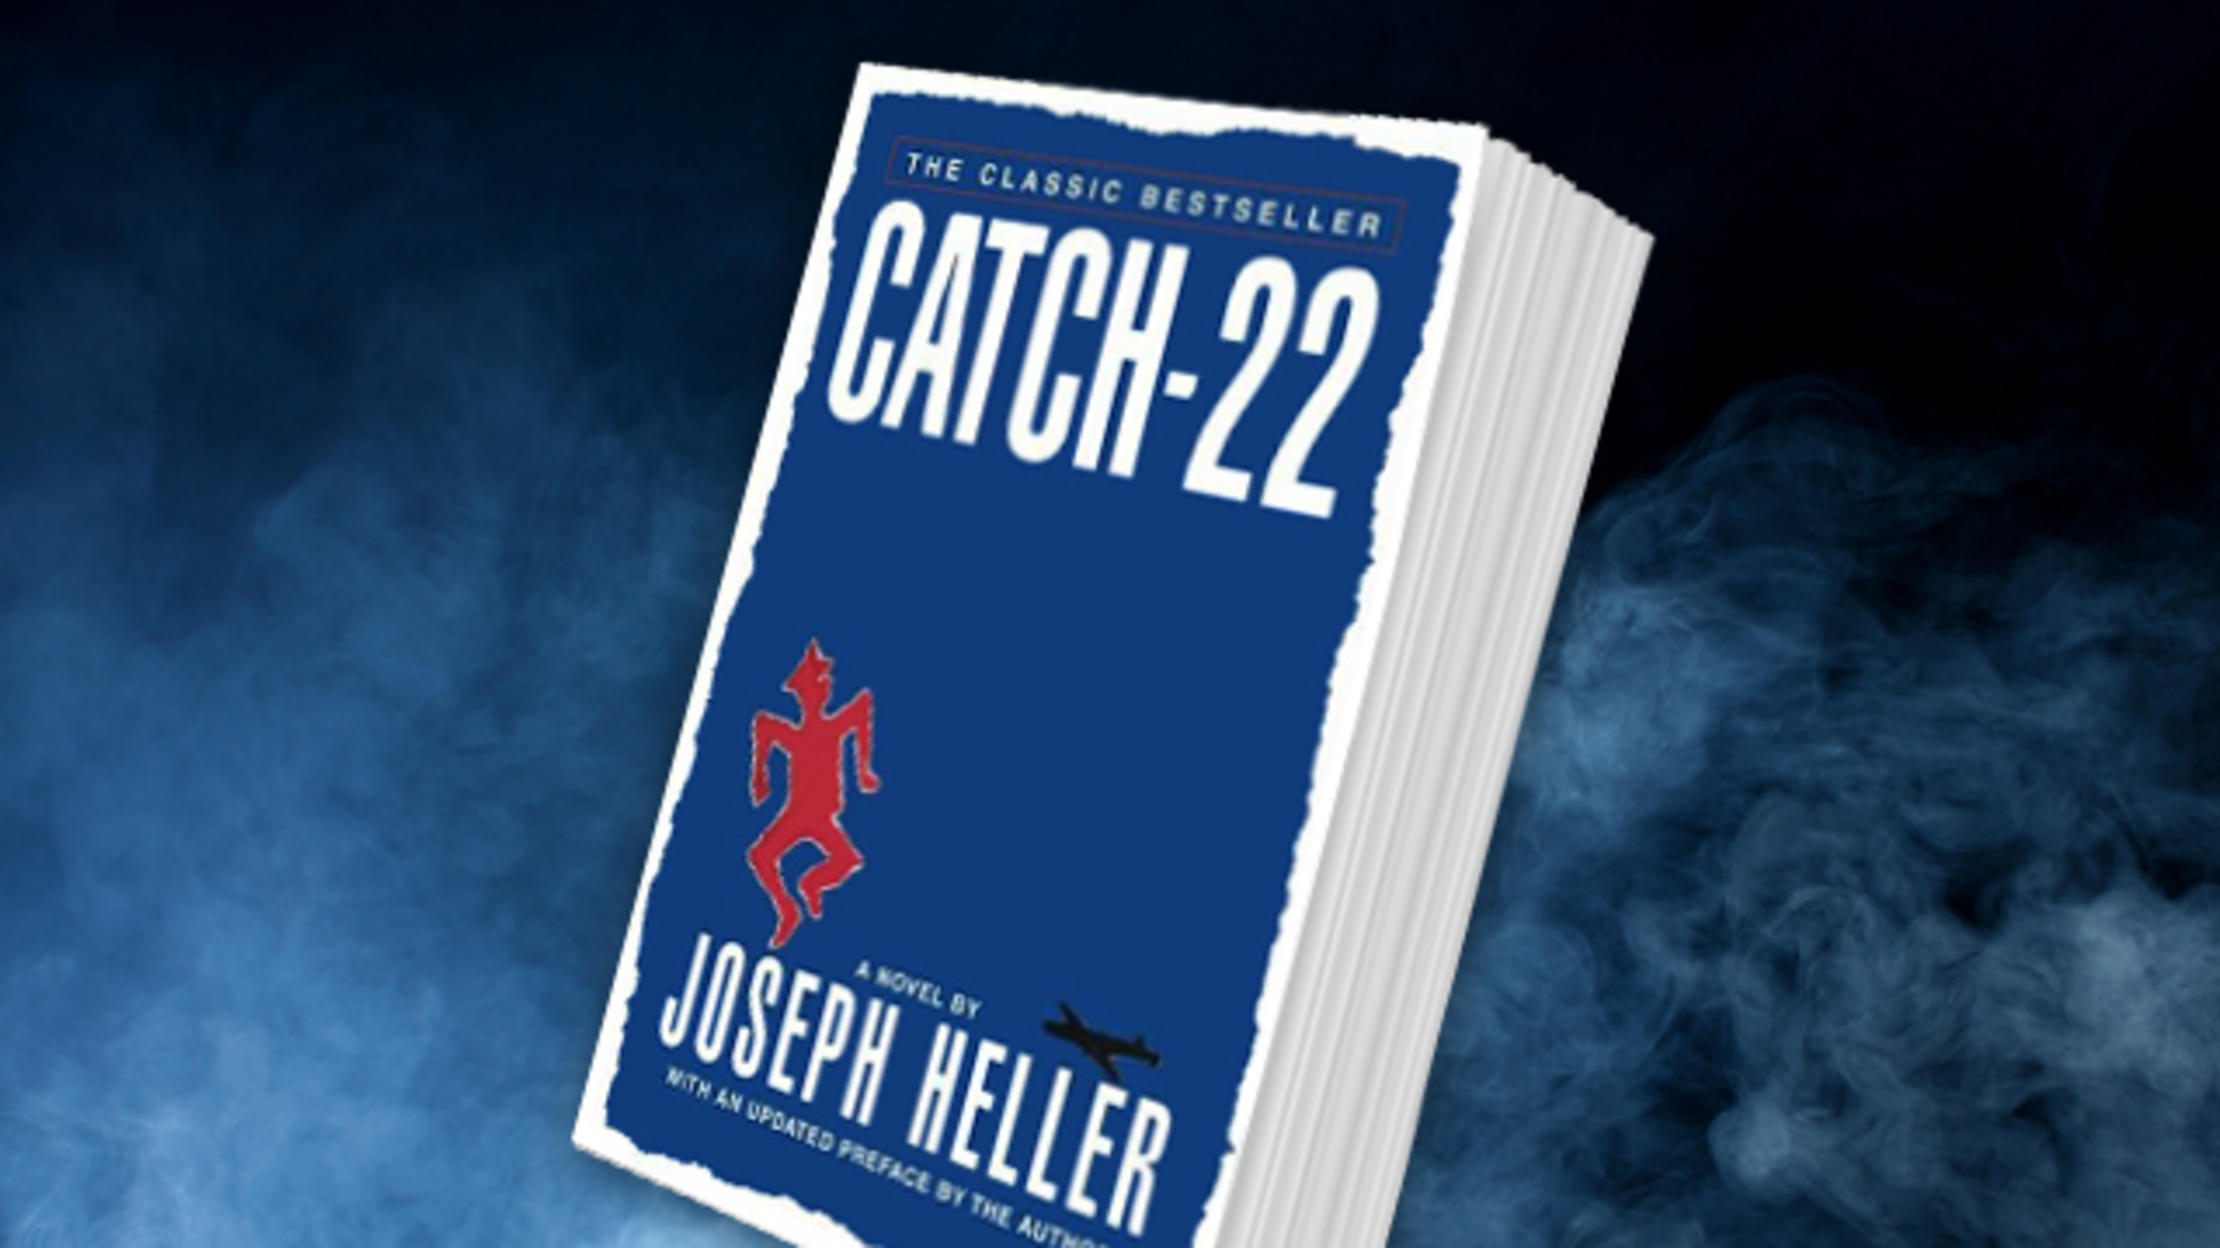 15 Things You Might Not Know About Catch-22